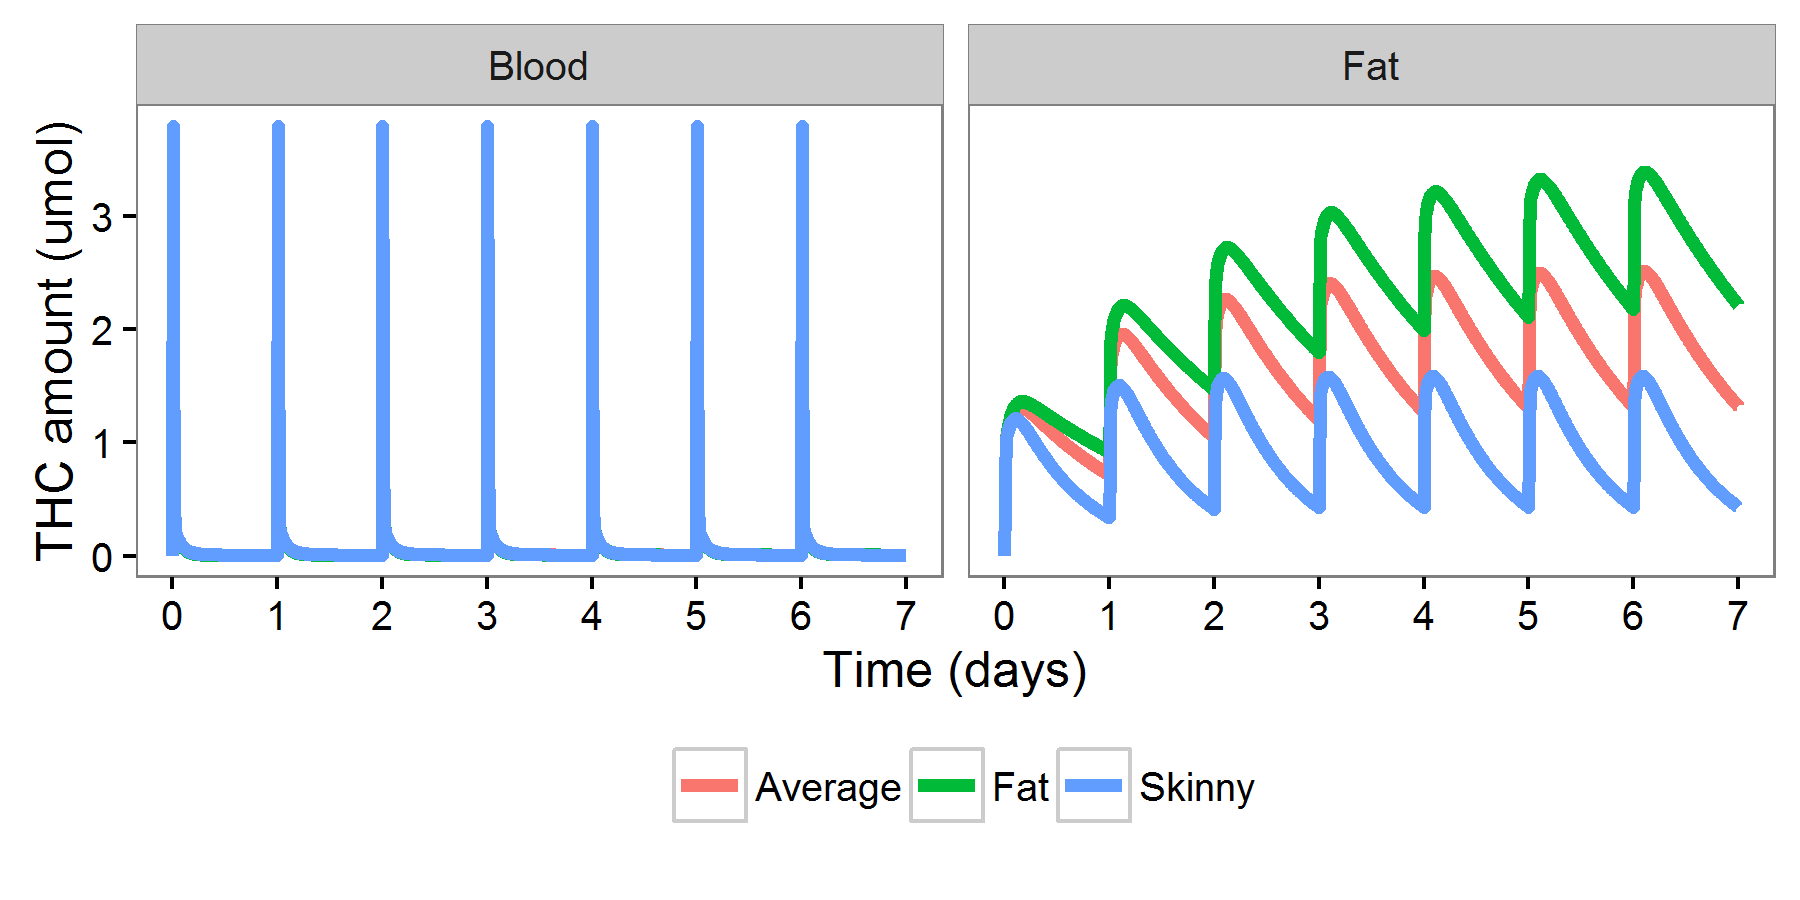 Body fat and thc can you pass a drug test with diet and exercise thc levels in blood and fat with daily cannabis use in people of different body fat nvjuhfo Choice Image